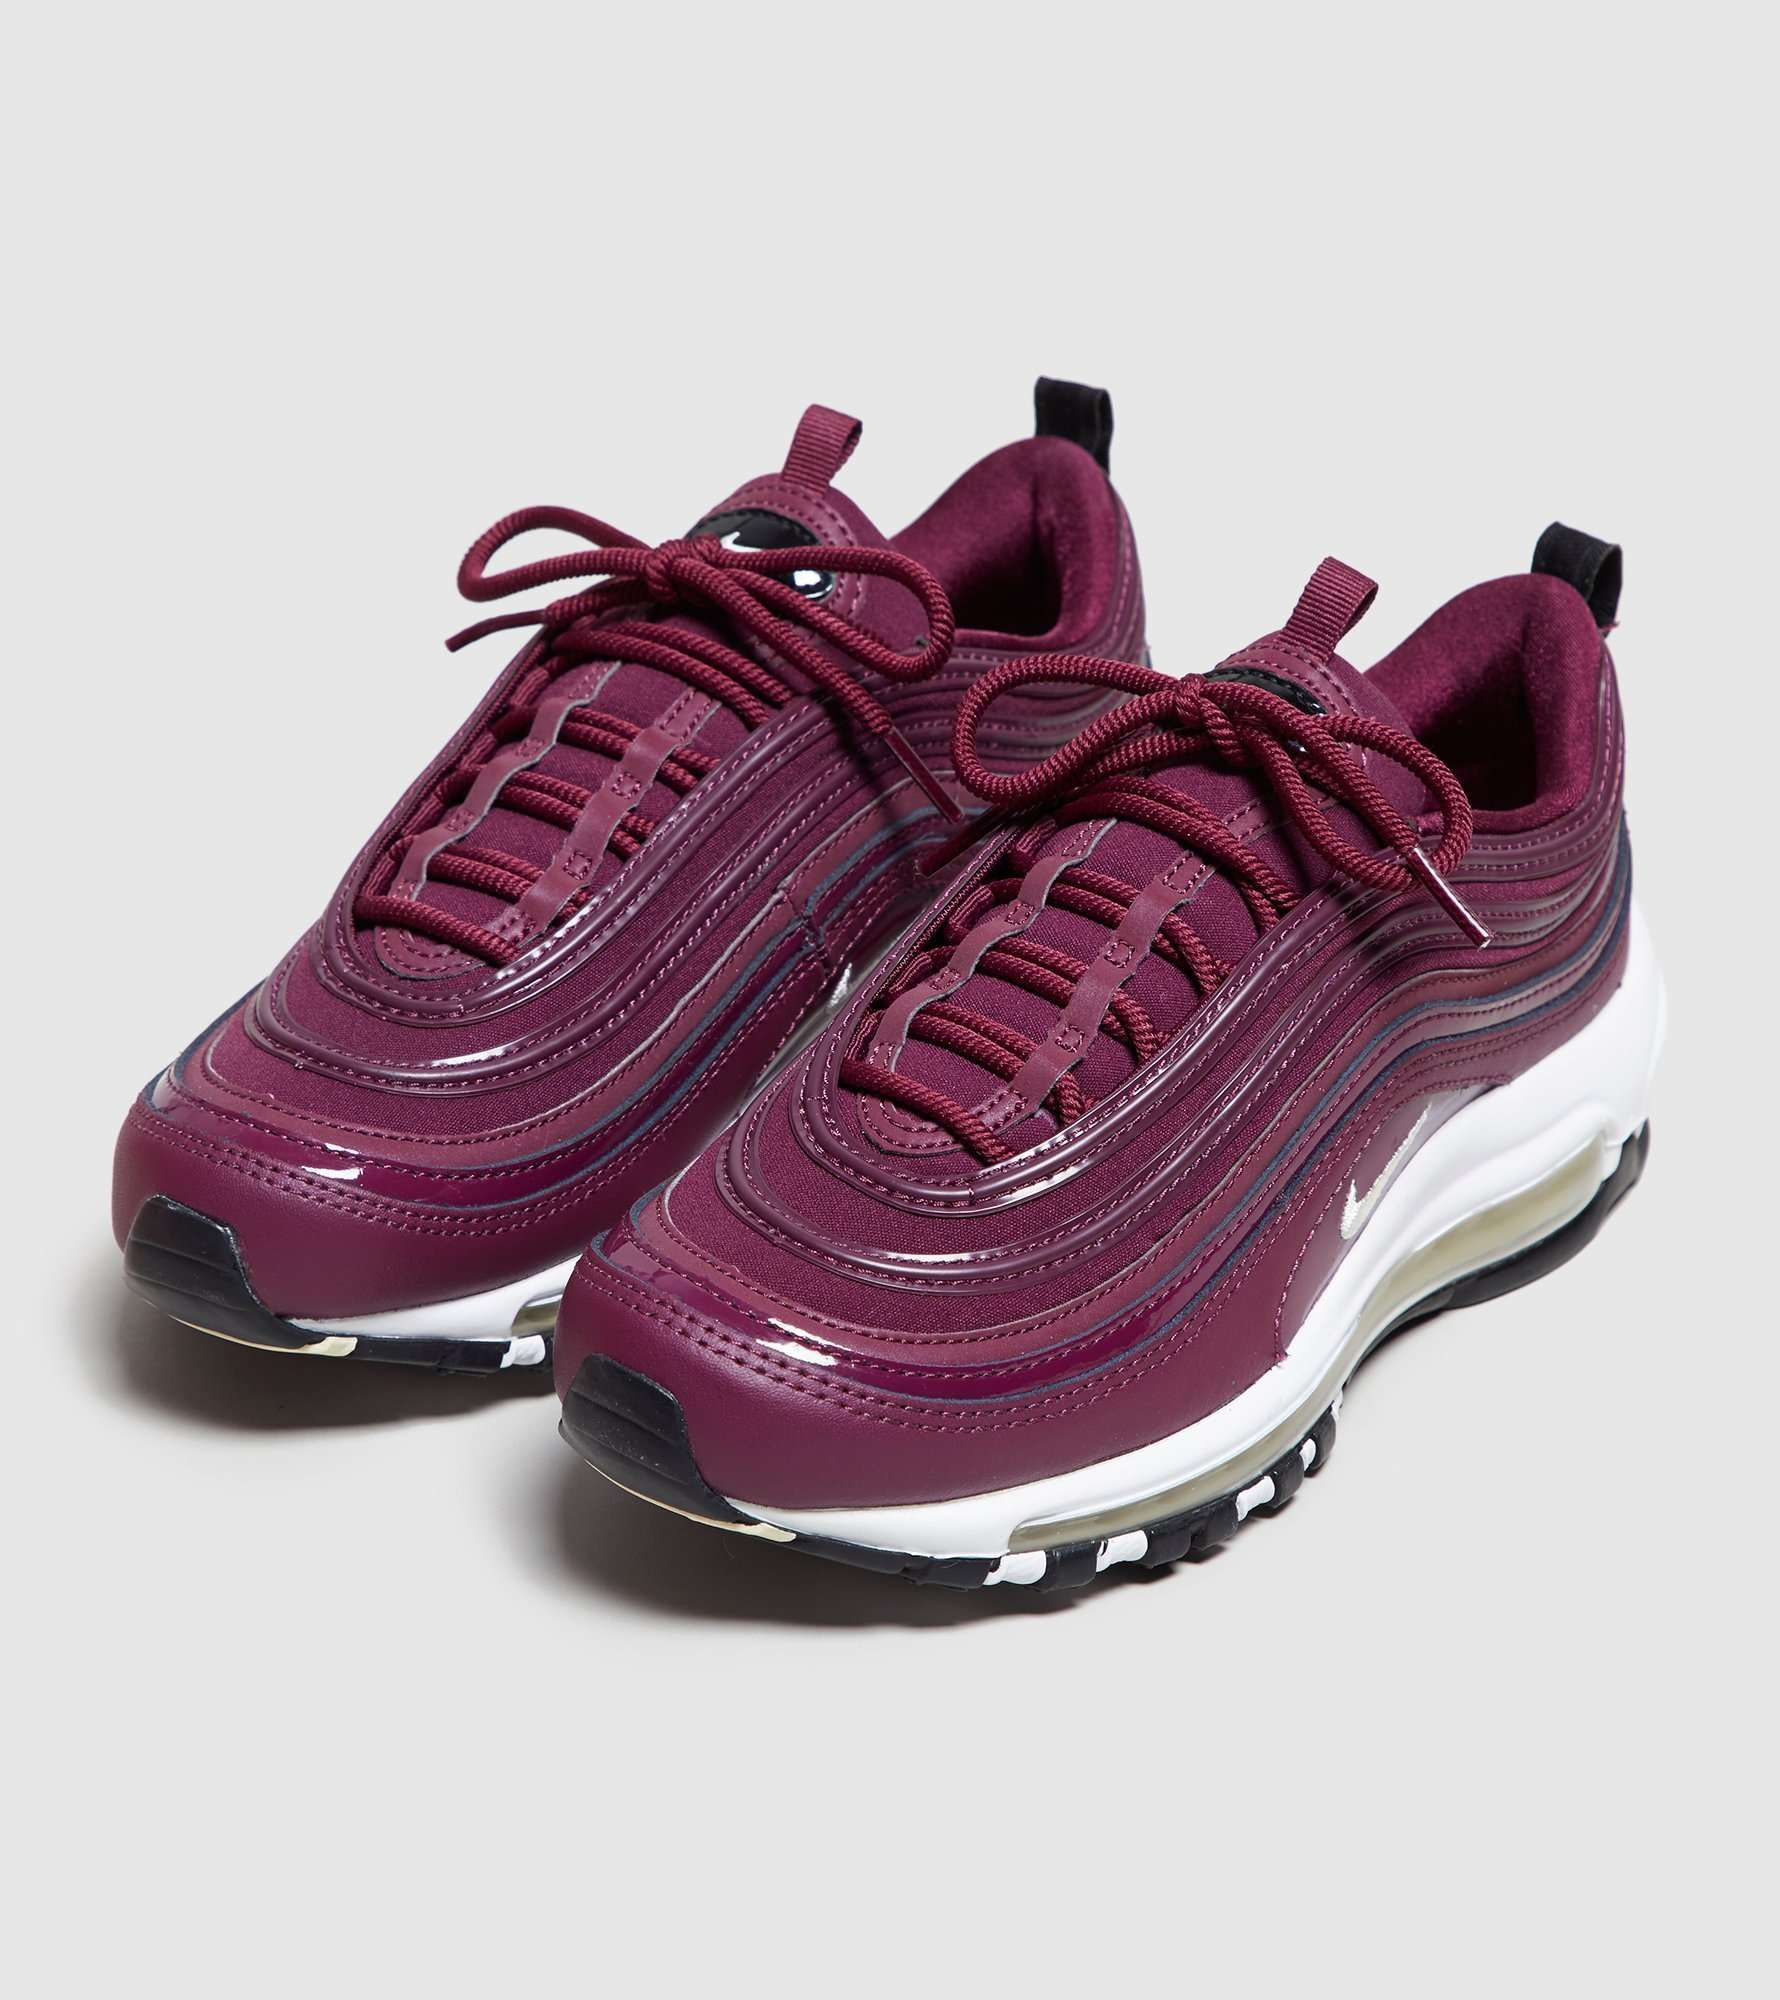 Nike Air Max 97 Femme | Size? | @giftryapp